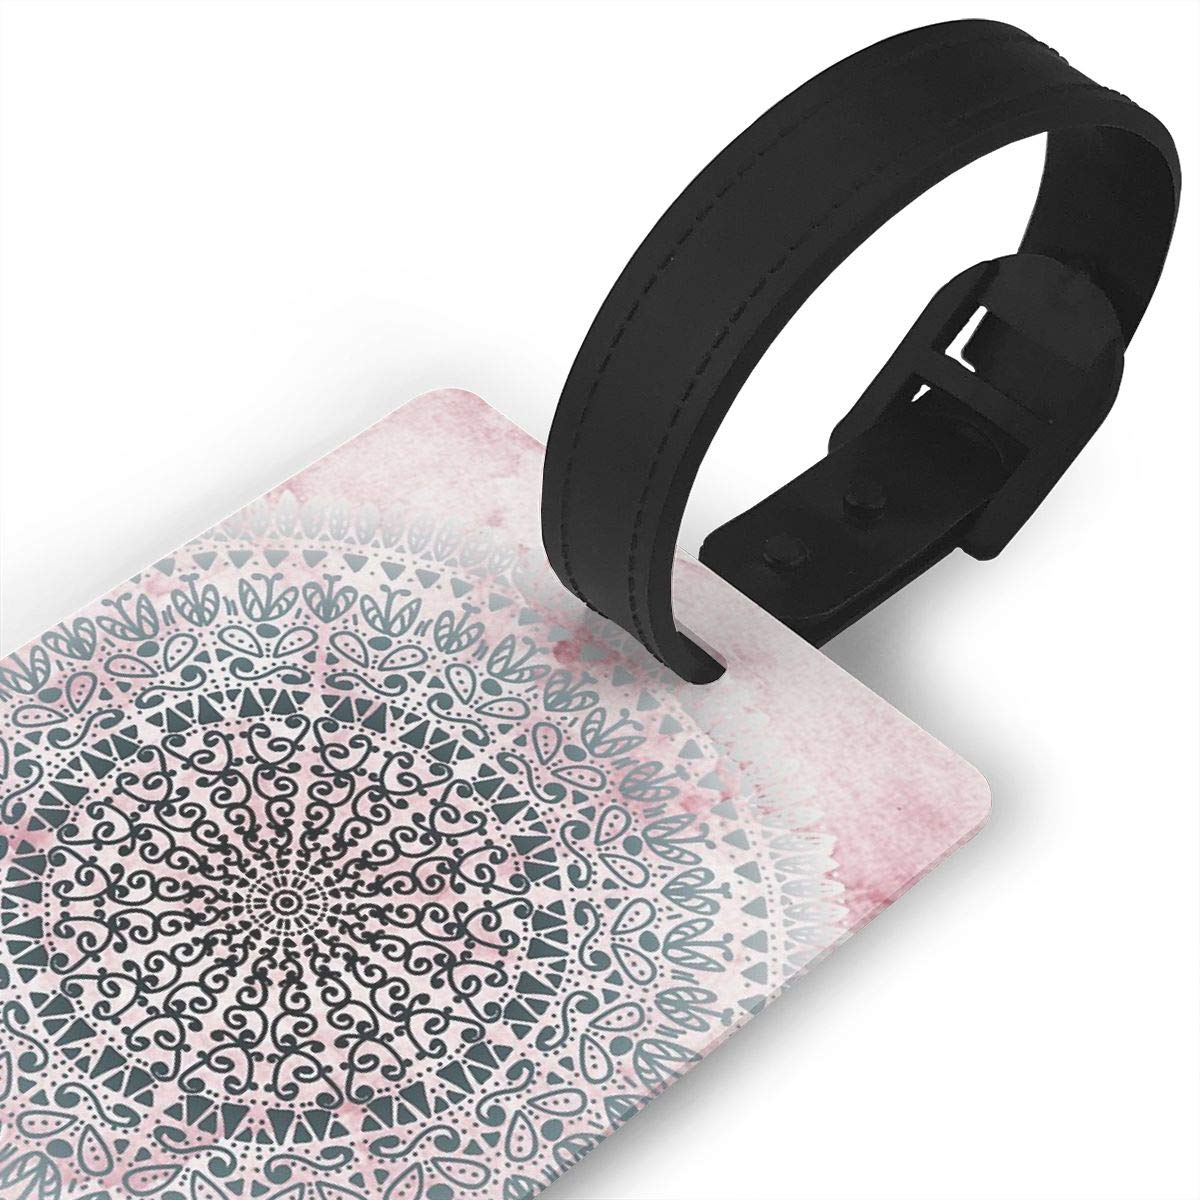 Set of 2 ICELAND MANDALA IN PINK Luggage Tags Suitcase Labels Bag Travel Accessories